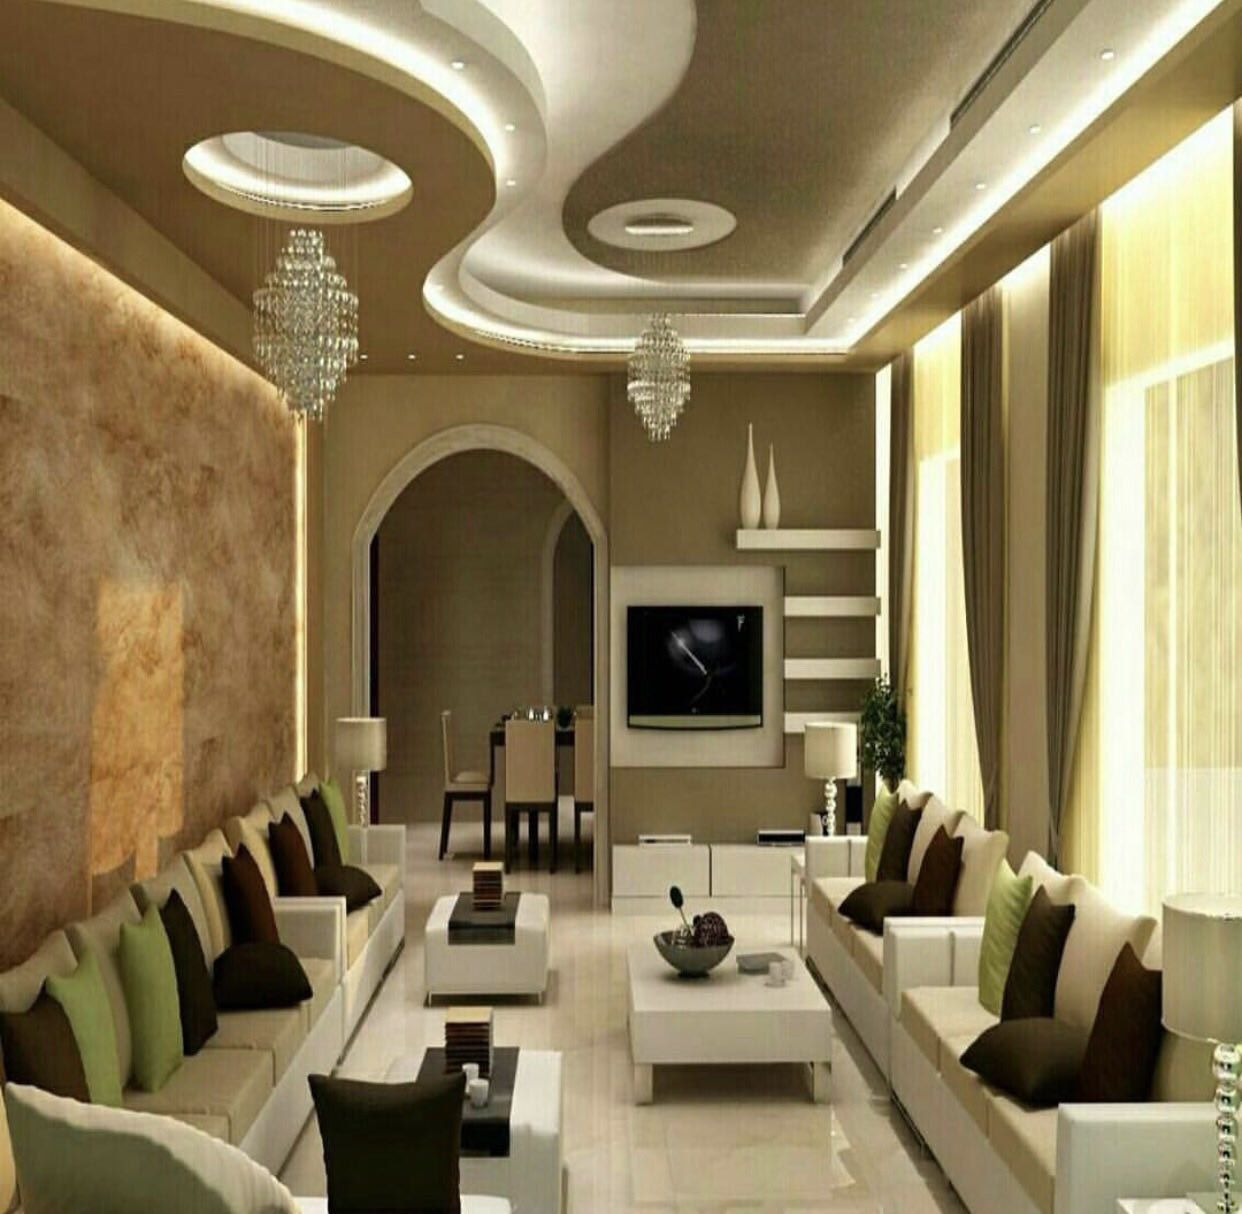 Pin By Suad Faraj On تصميم بيوت False Ceiling Design Ceiling Design Living Room False Ceiling Living Room